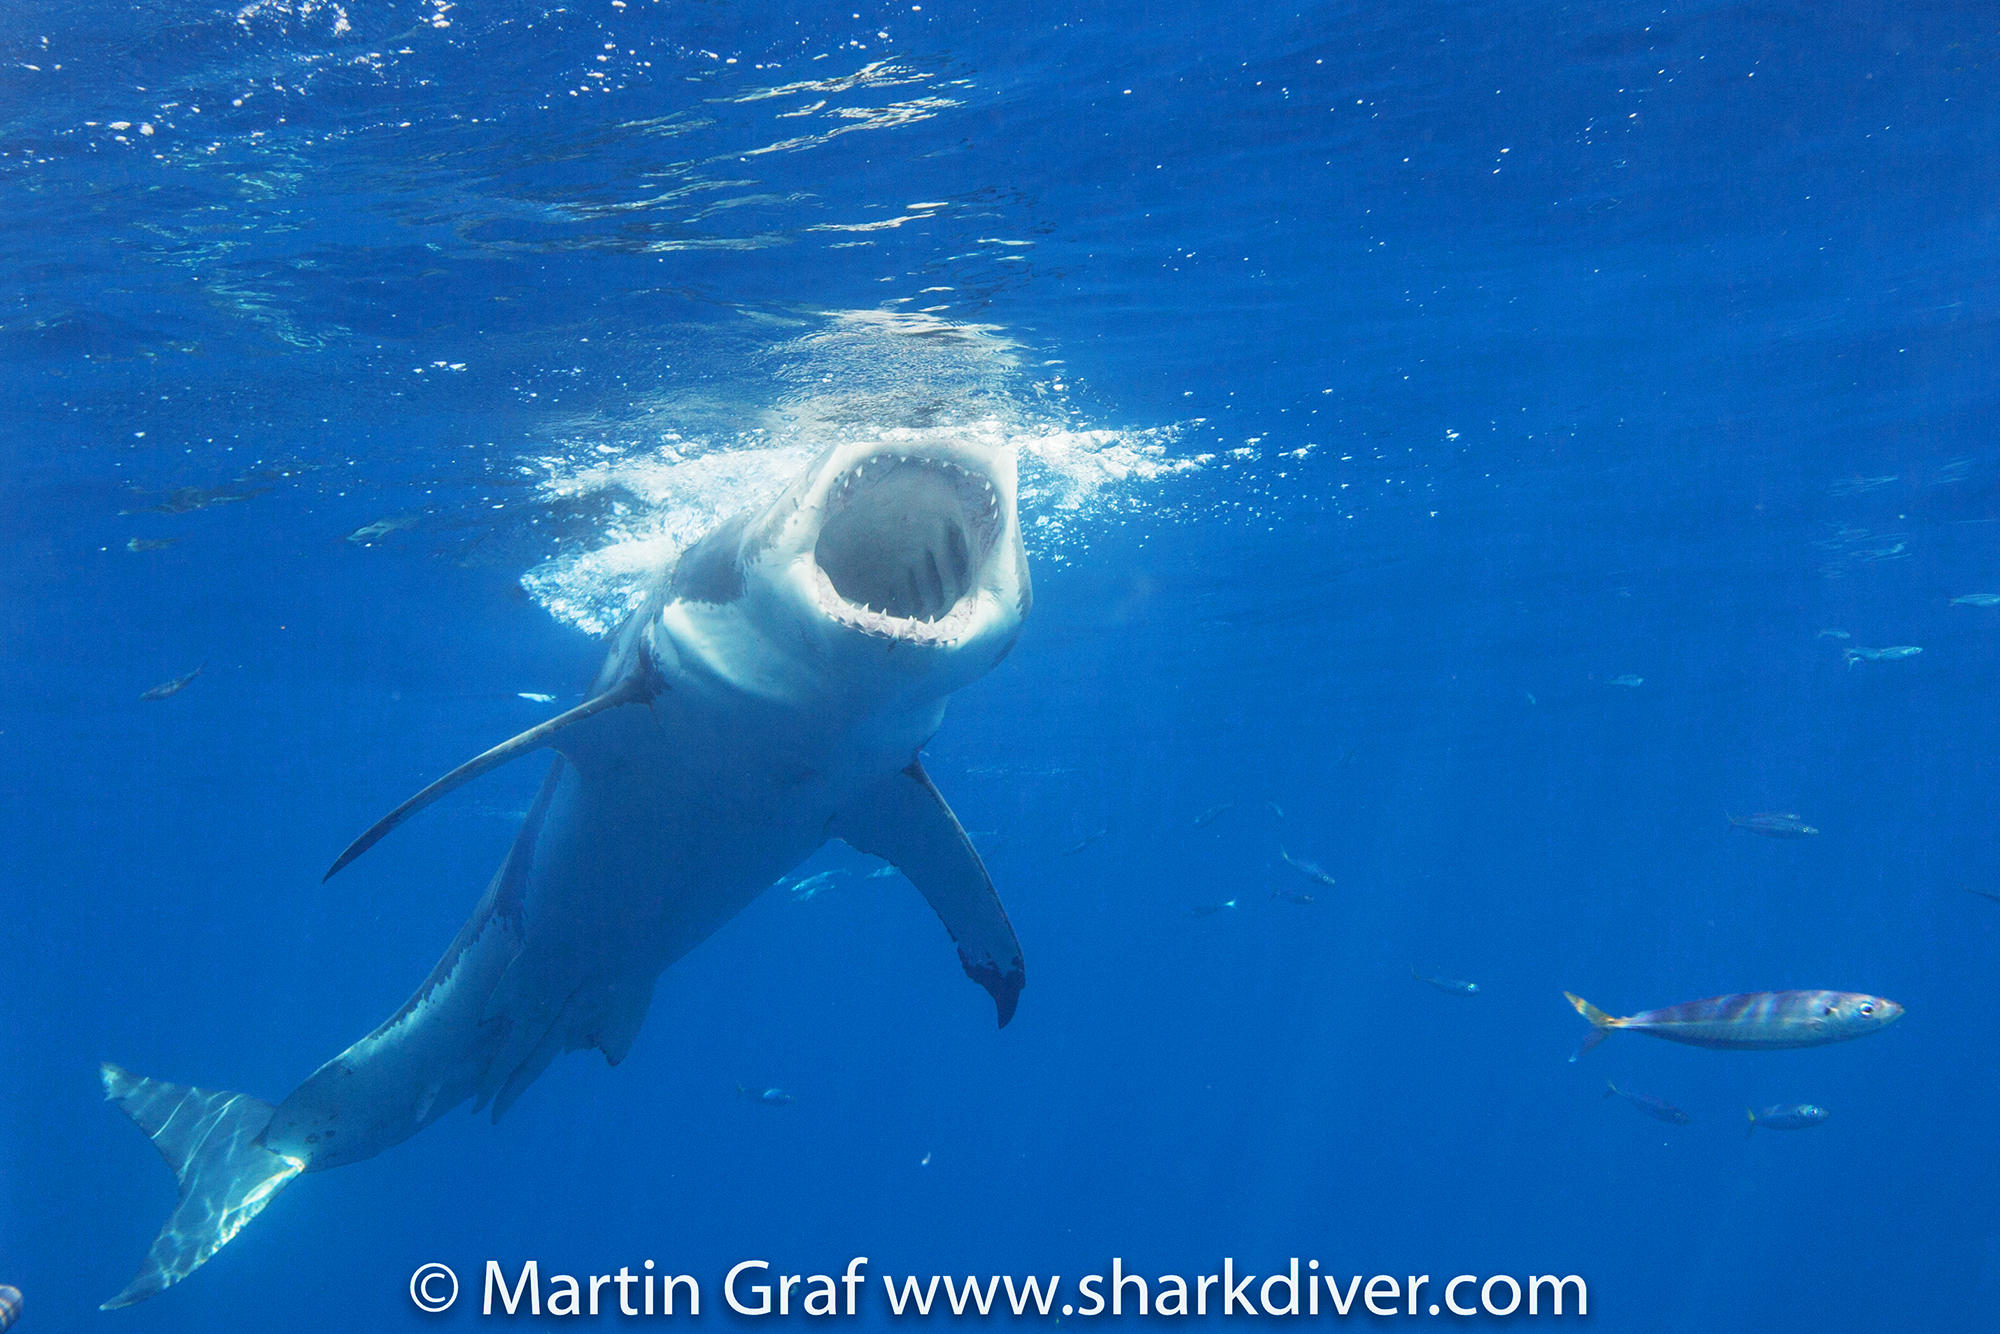 White Shark goes for the bait, Photo by Martin Graf